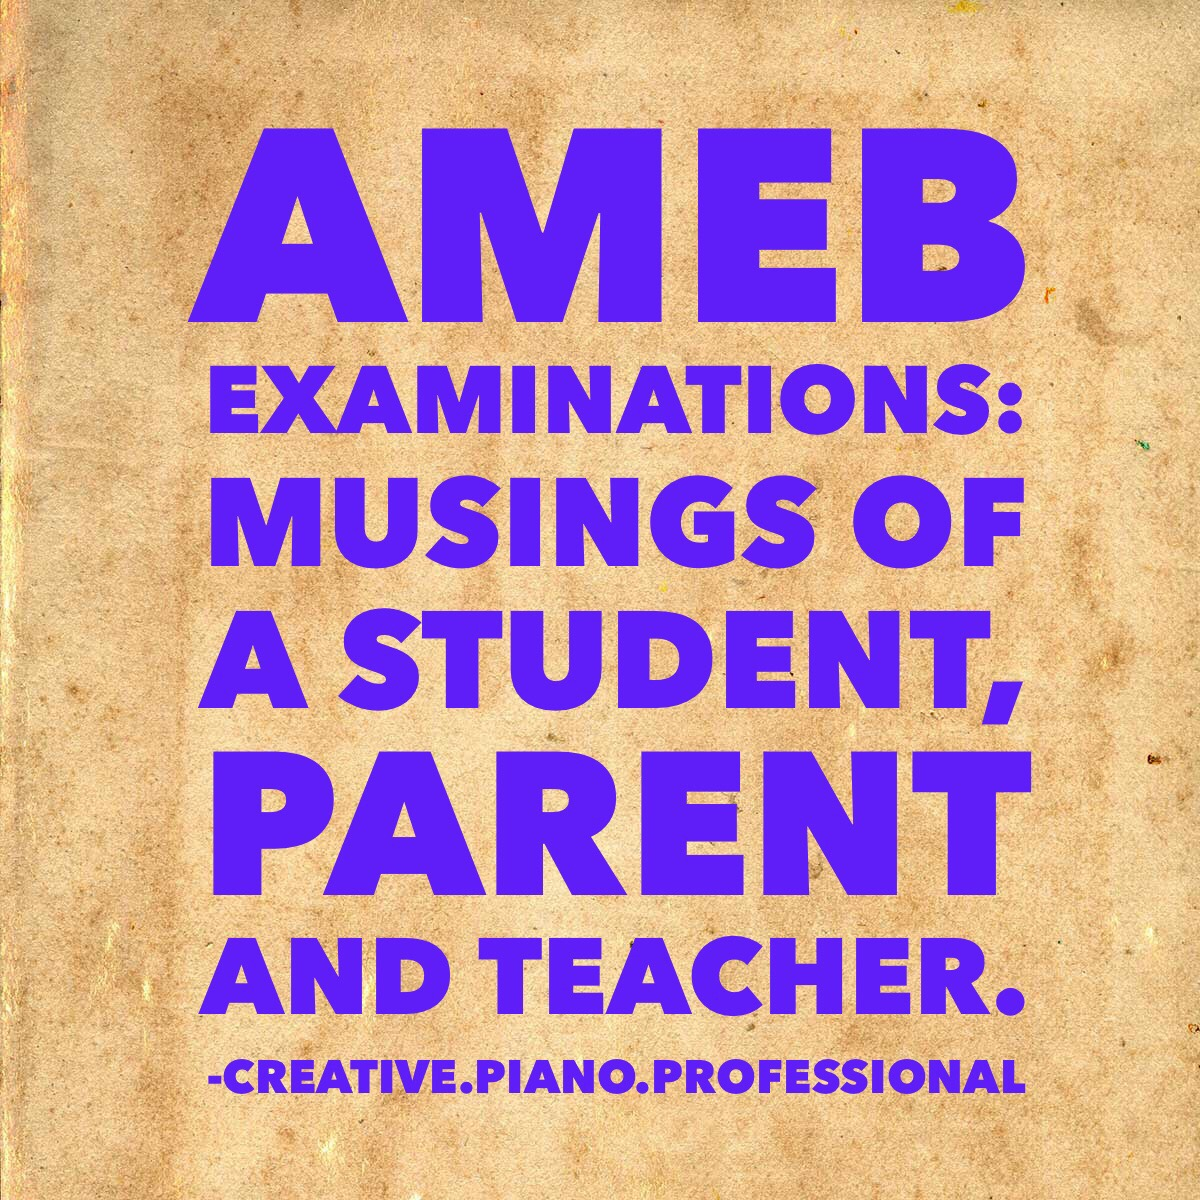 how to become an ameb teacher